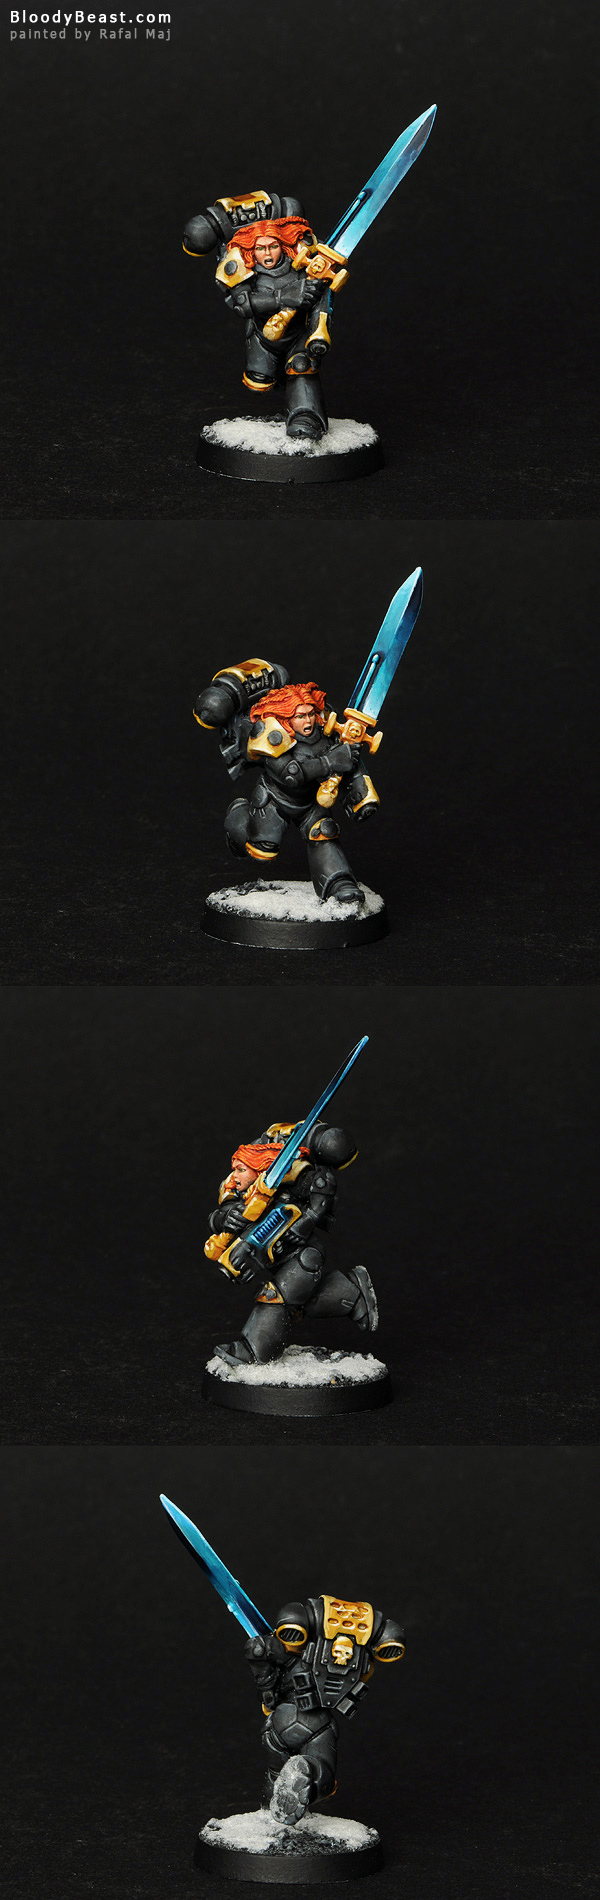 Space Wolves Female Lone Wolf painted by Rafal Maj (BloodyBeast.com)